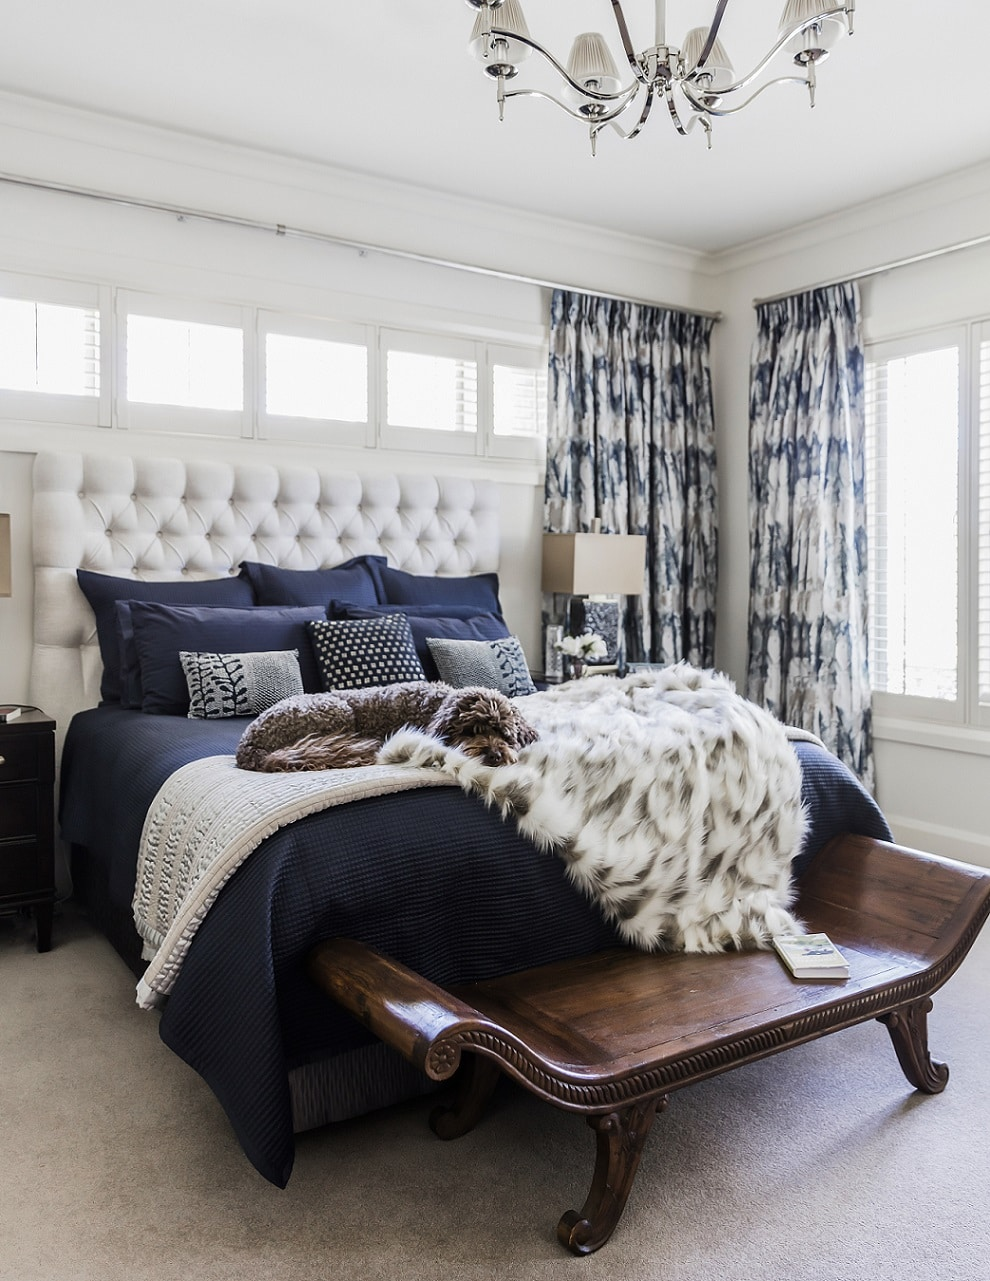 deakin classic bedroom colour palette navy white cream luxury sophisticated canberra decorating project